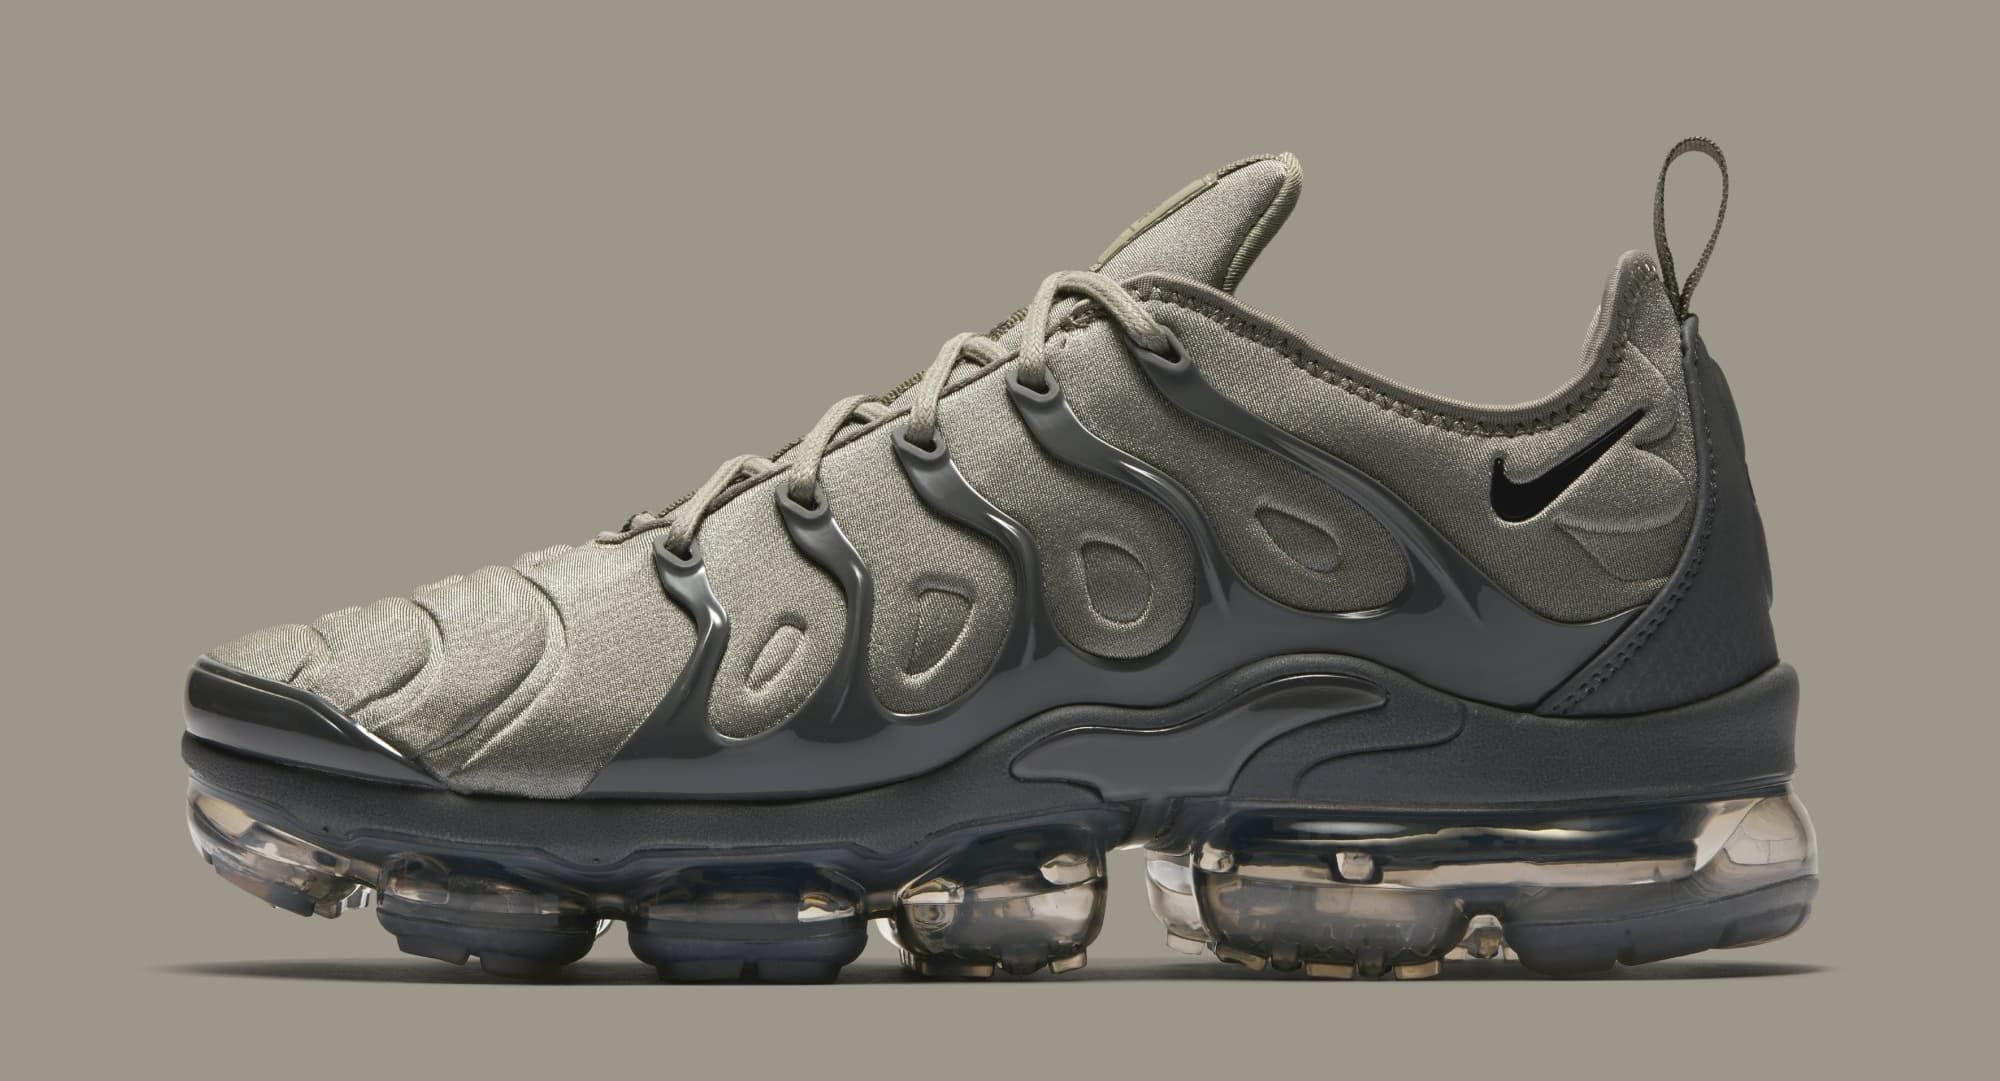 timeless design c8ee4 169a2 Nike VaporMax Plus  Dark Stucco White Dark Grey Anthracite  AT5681-001  (Lateral)